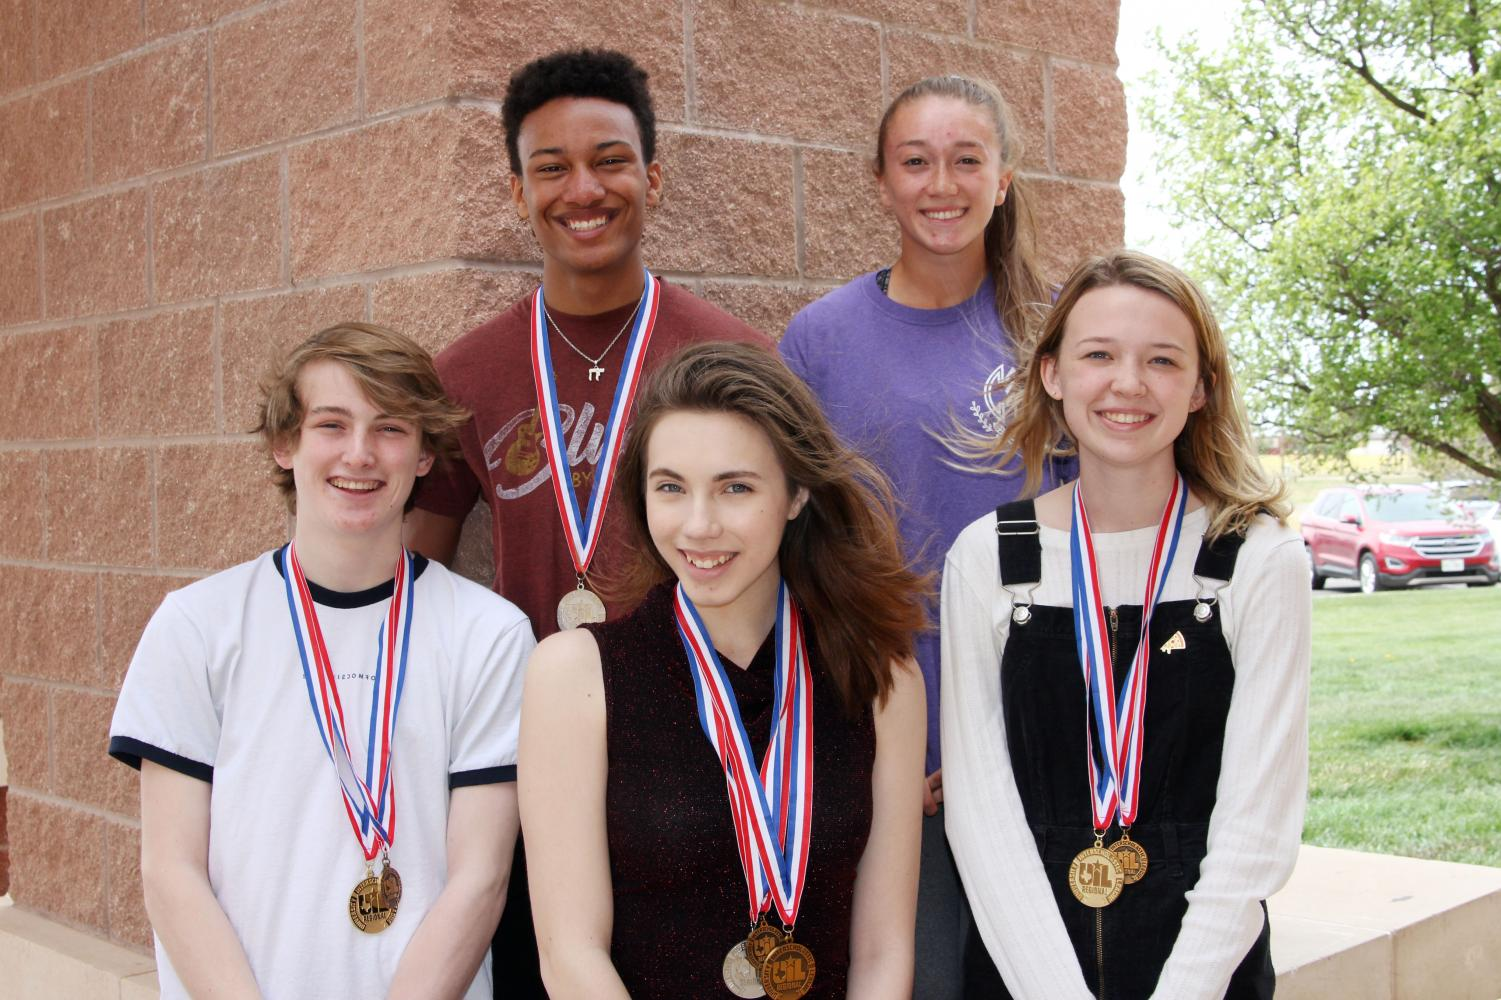 Seniors Erin Sheffield and Natalie Davis, juniors Luke Bruce and Claire Meyer and freshman Bronson Kwaku all qualified for UIL State.